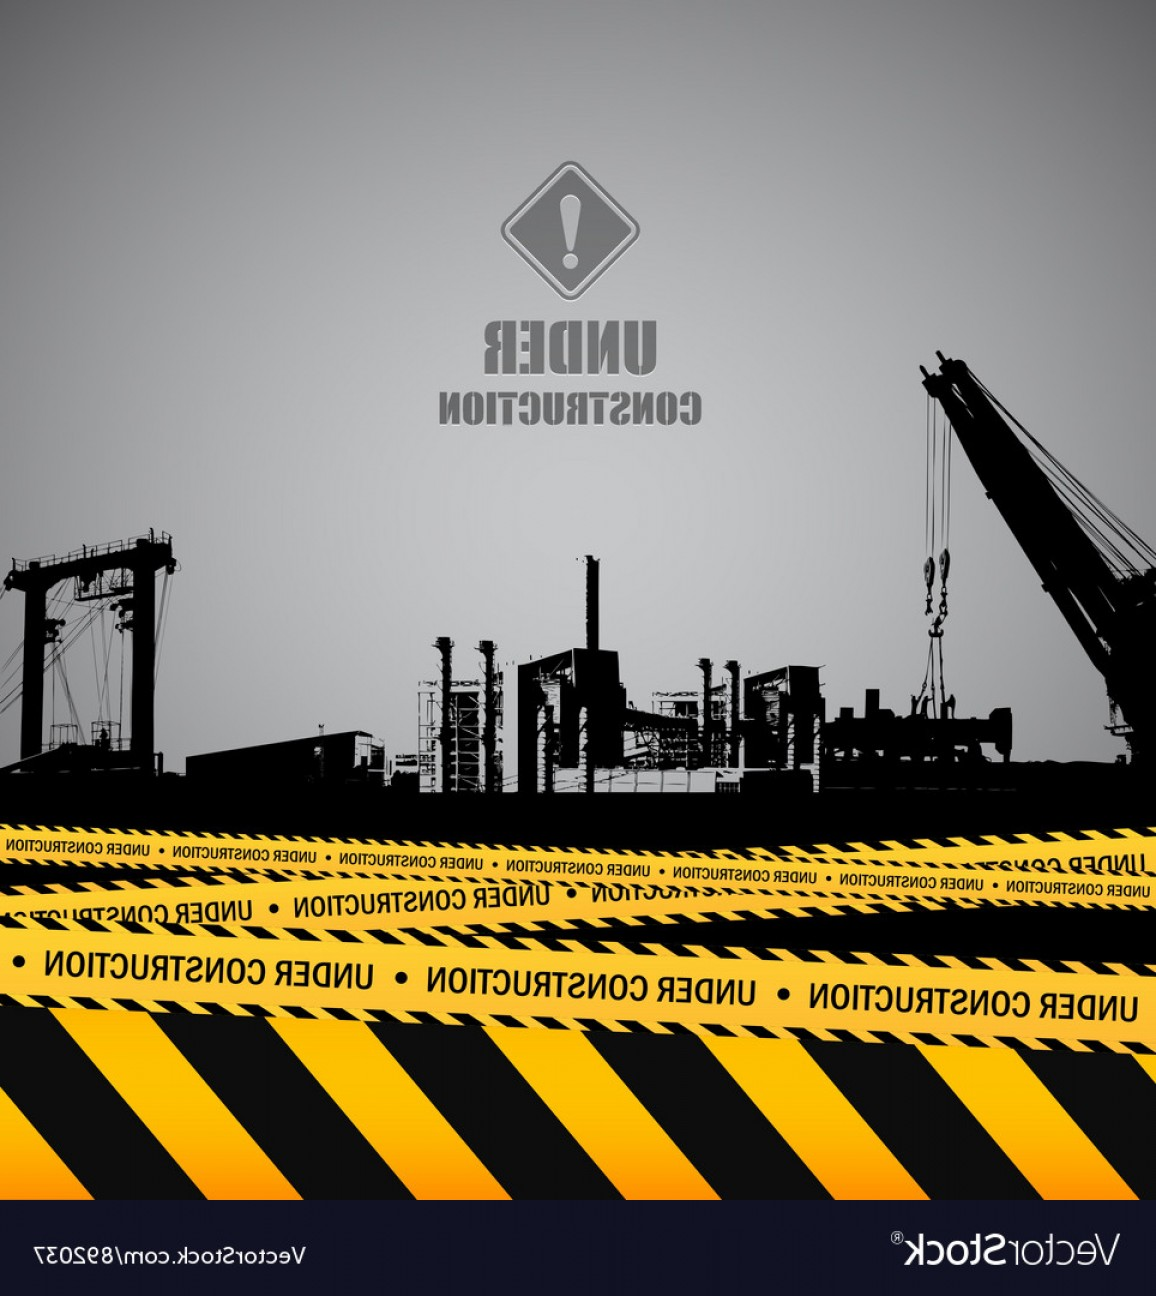 Vector Under Construction Template: Under Construction Industrial Template Design Vector